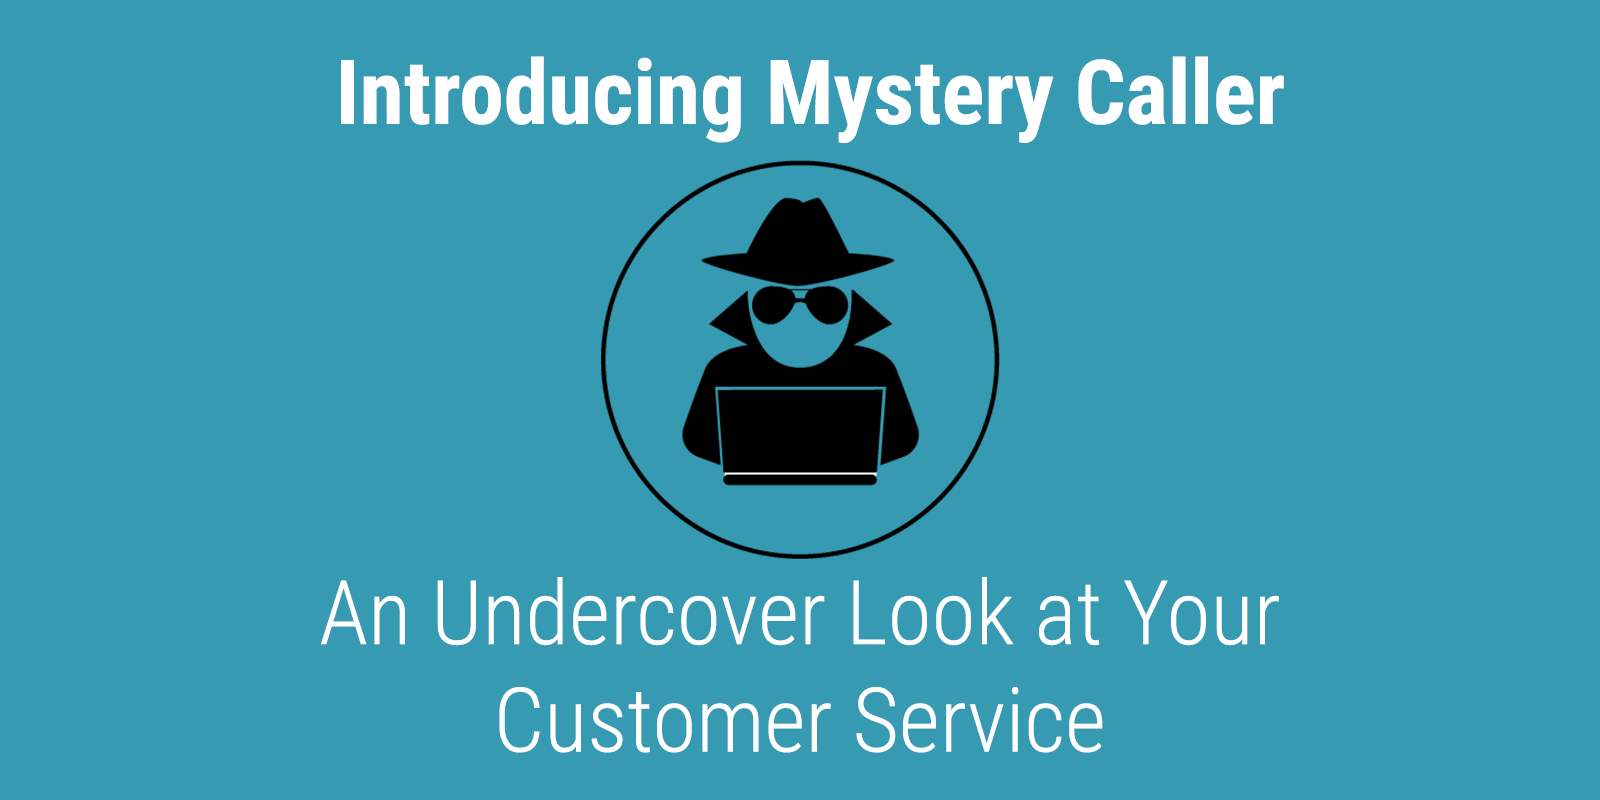 Mystery Caller: An Undercover Look at Your Customer Service